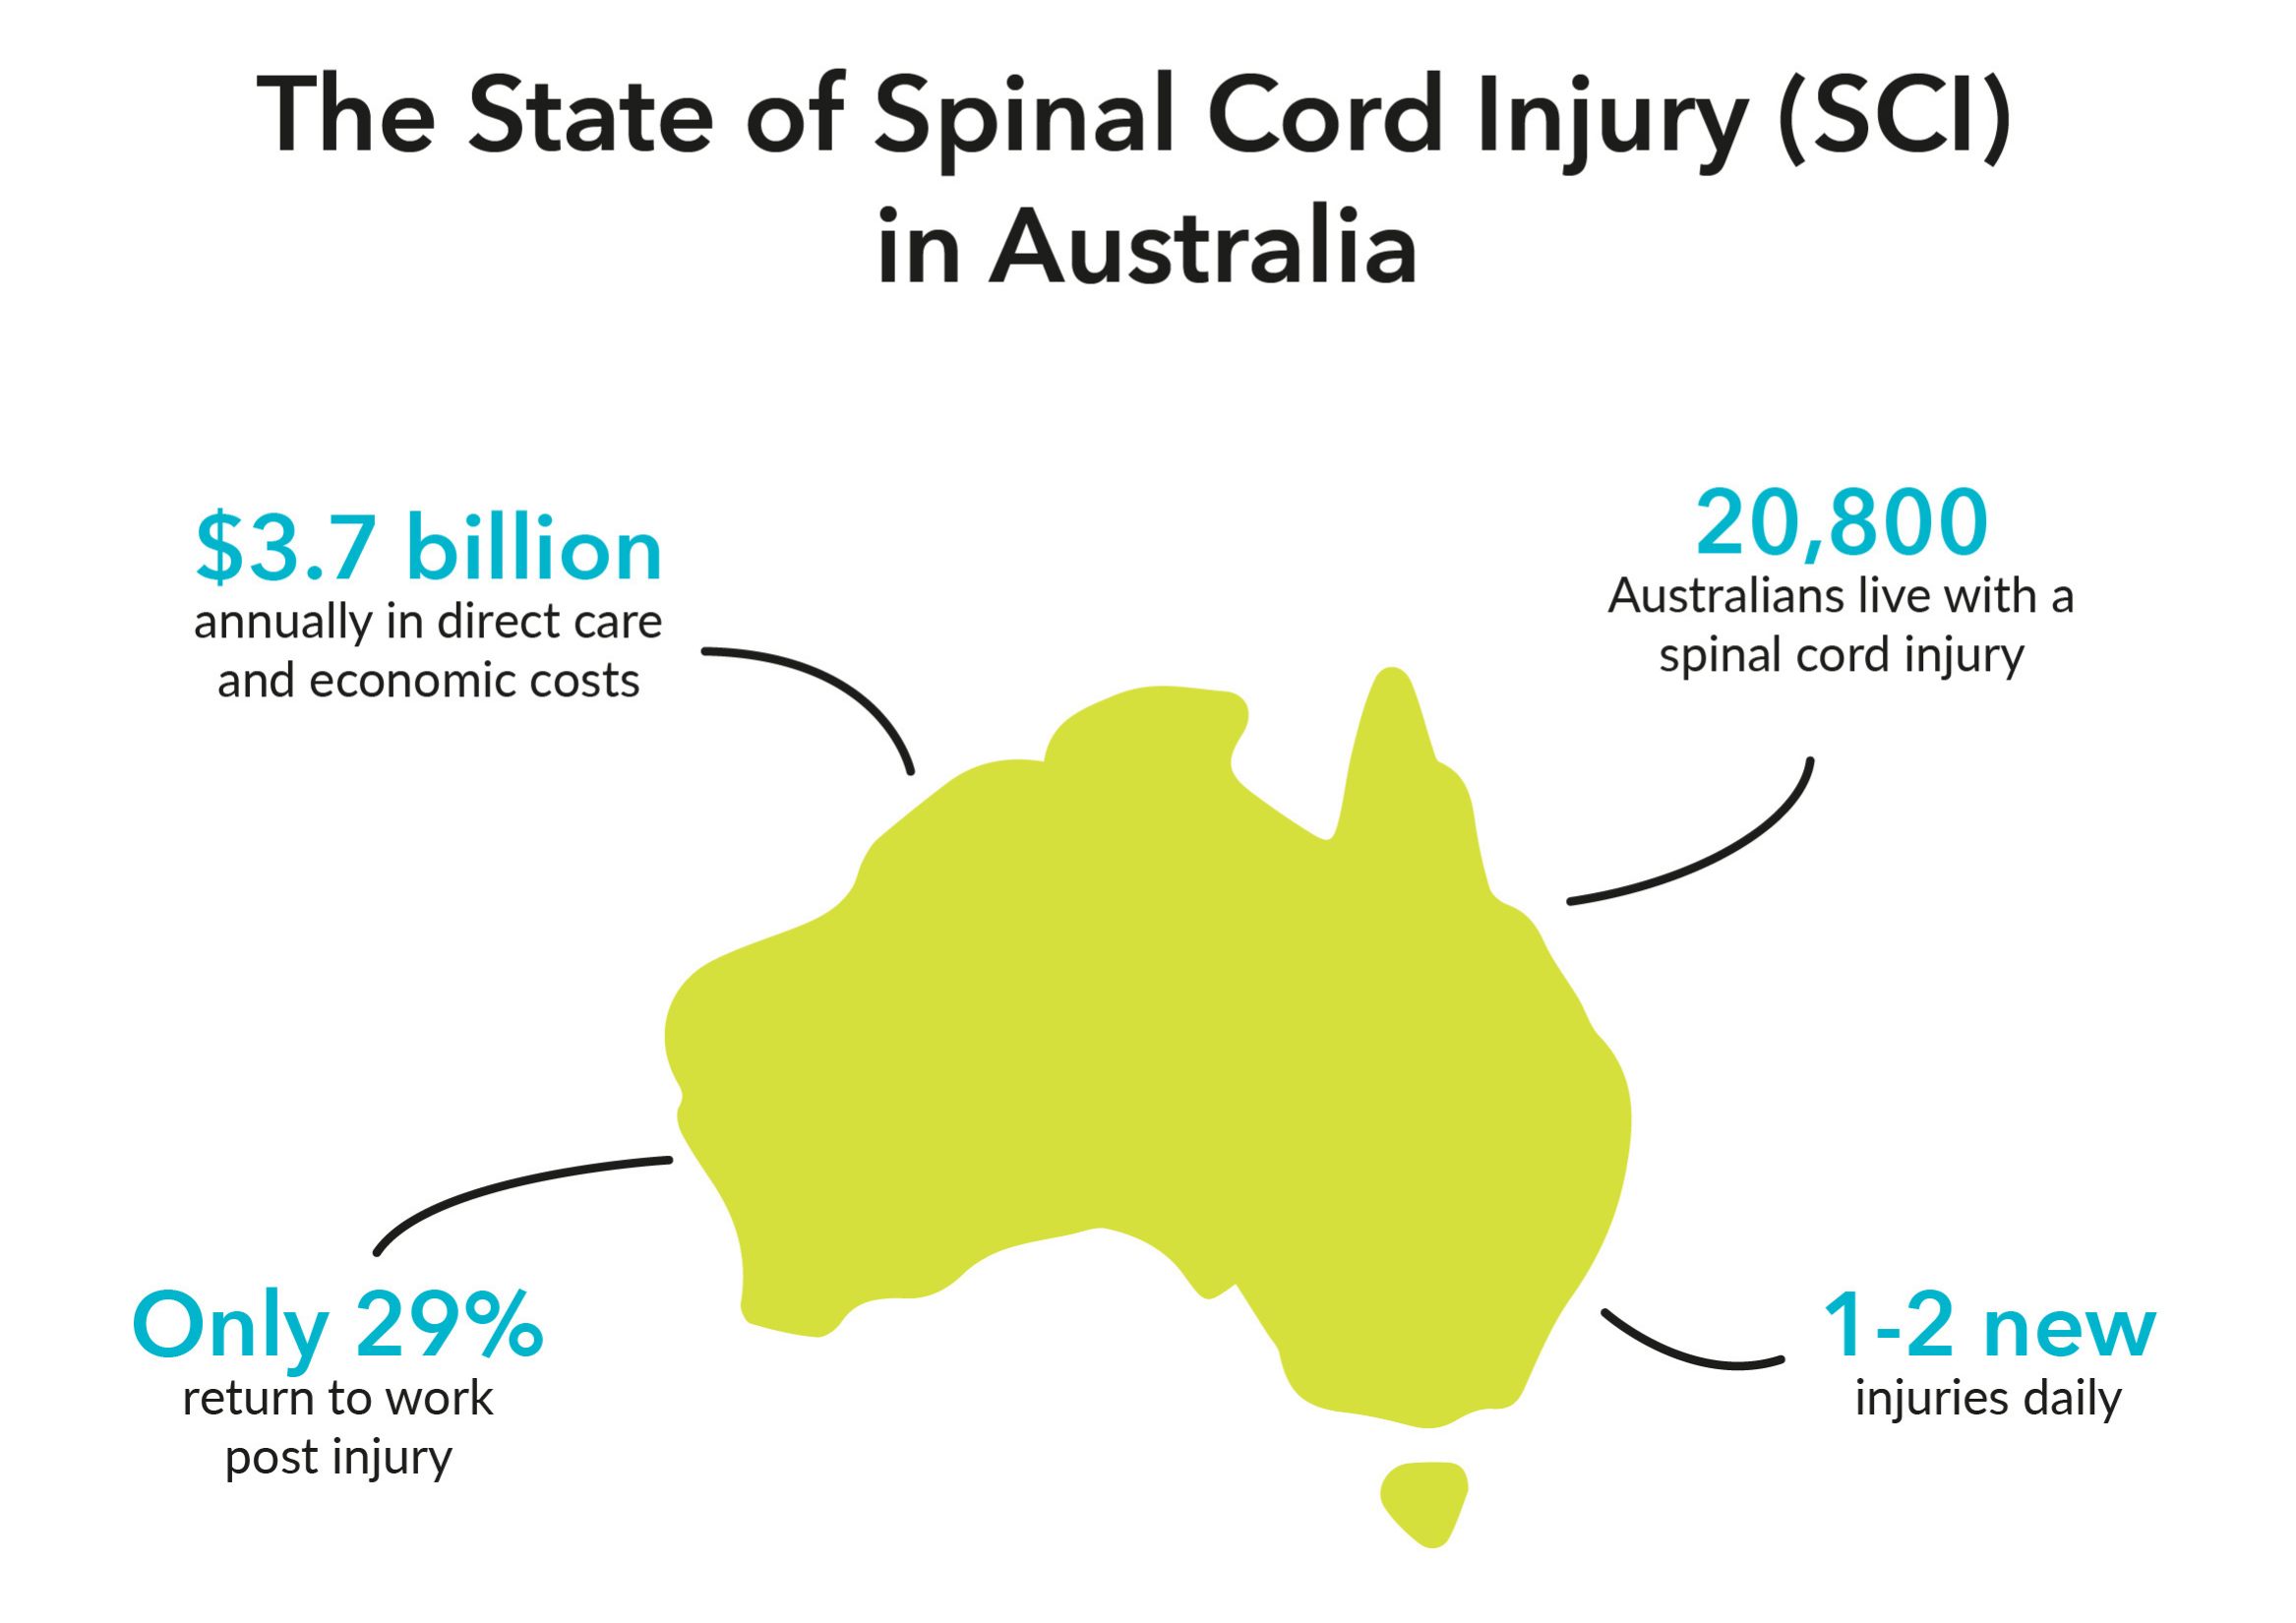 Infographic about SCI in Australia